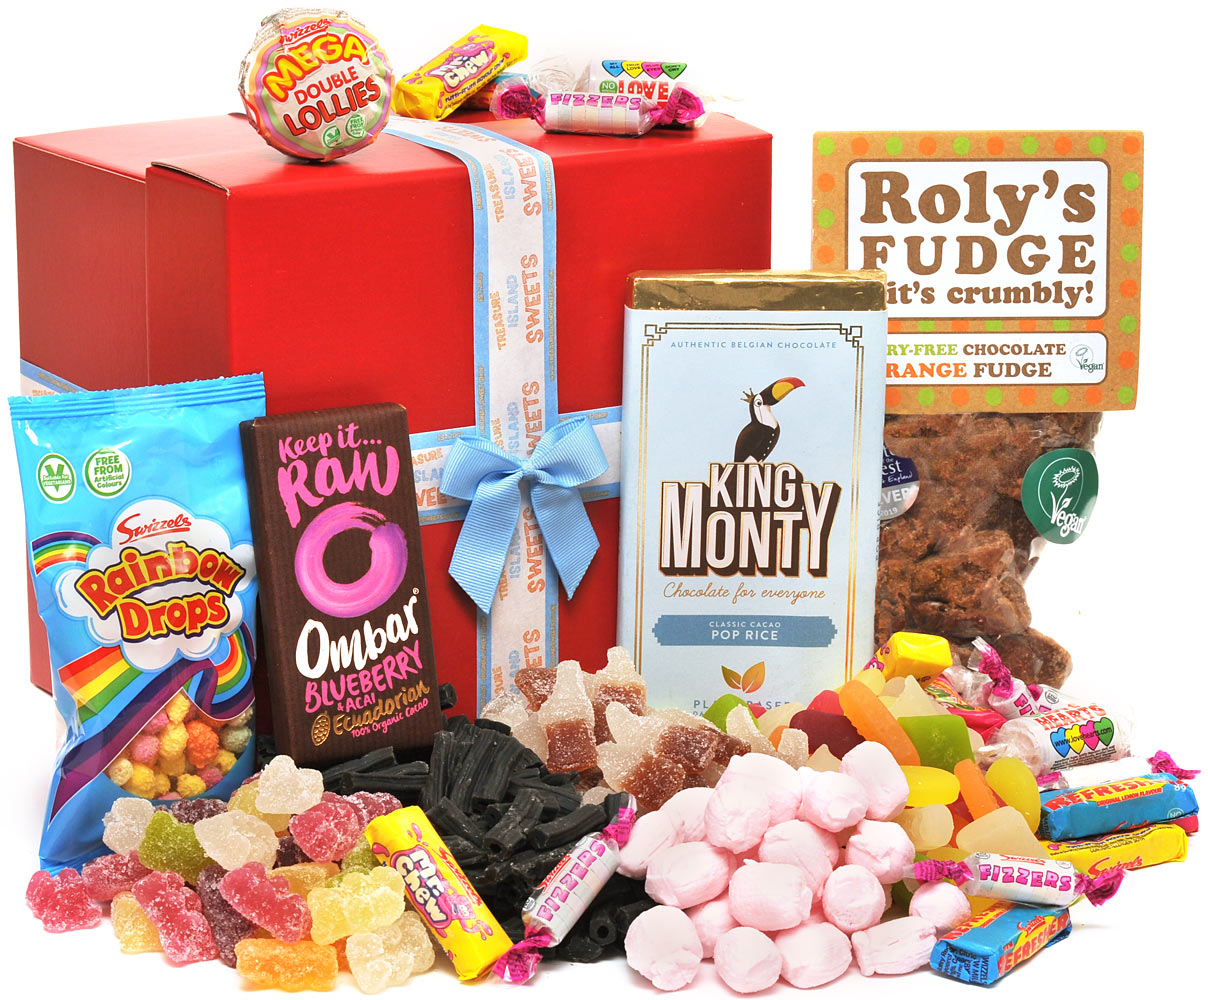 Vegan Sweets & Chocolate Hamper